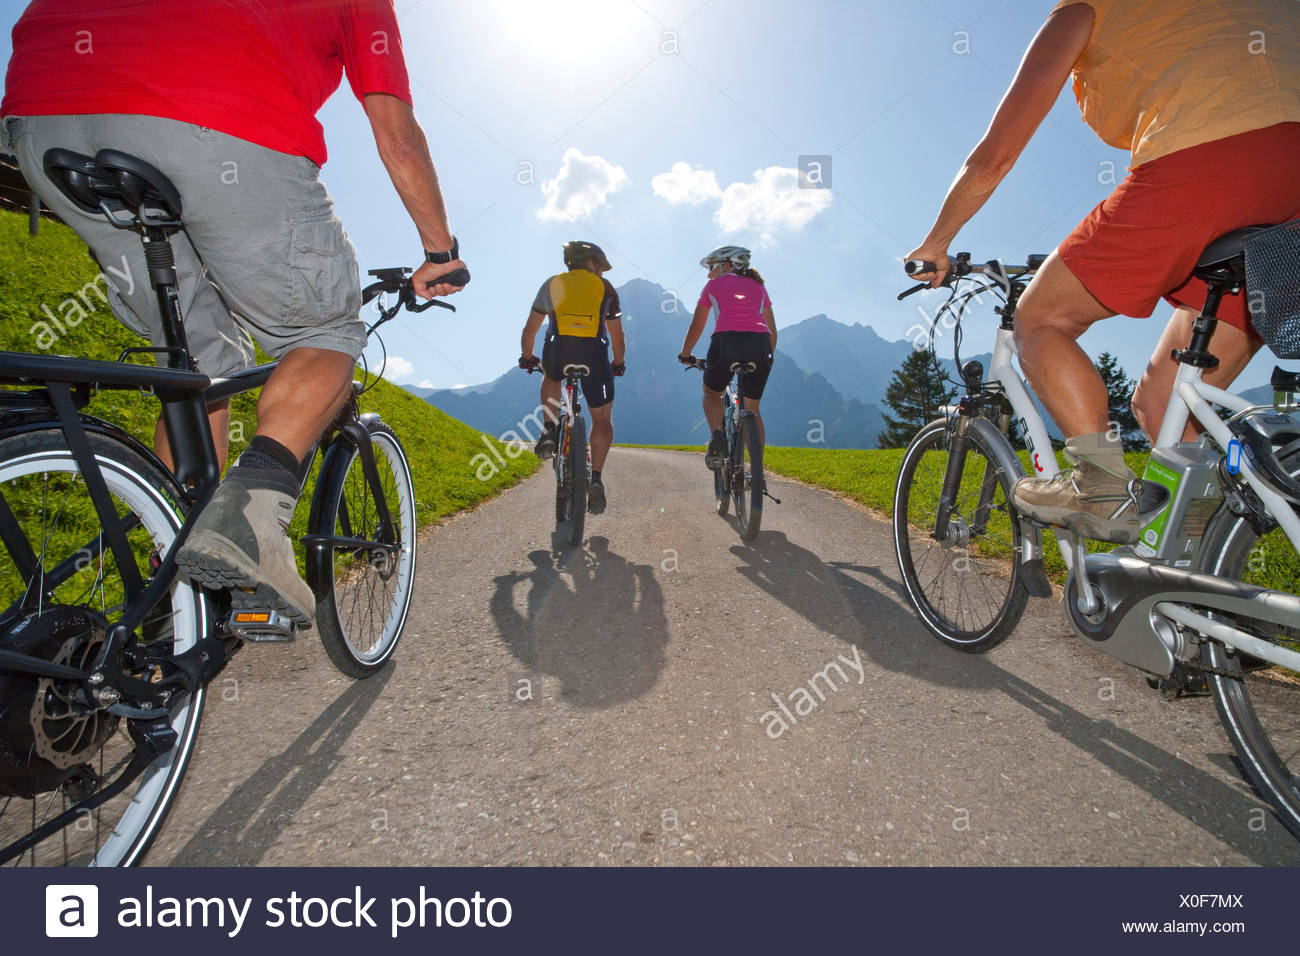 Electric bike, Ebike, electric bicycle, Adelboden, canton, Bern, Bernese Oberland, summer sport, bicycle, bicycles, bike, riding - Stock Image